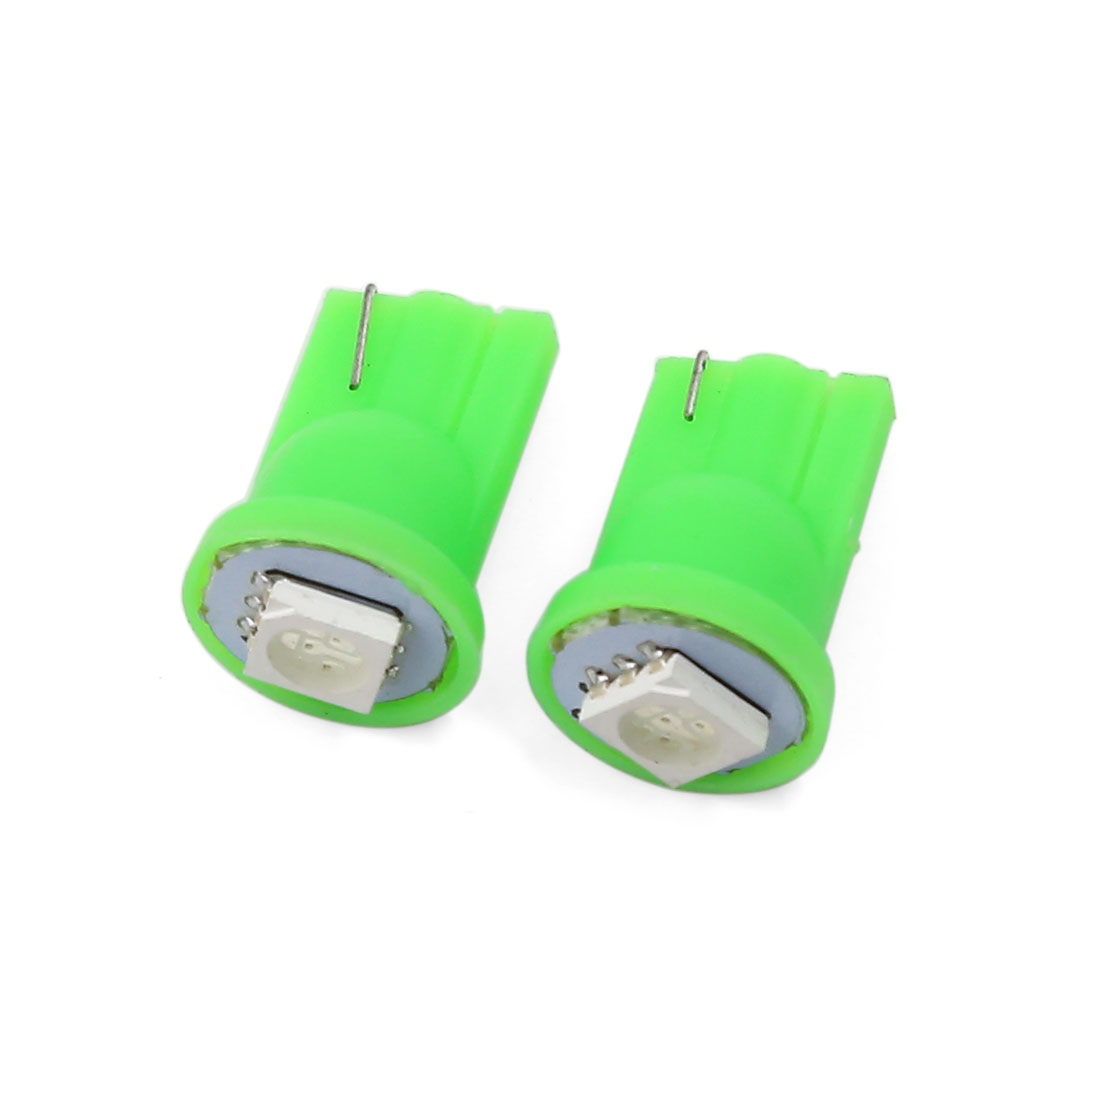 2 Pcs T10 5050 SMD LED Auto Car Instrument Panel Wedge Light Lamp Green Interior